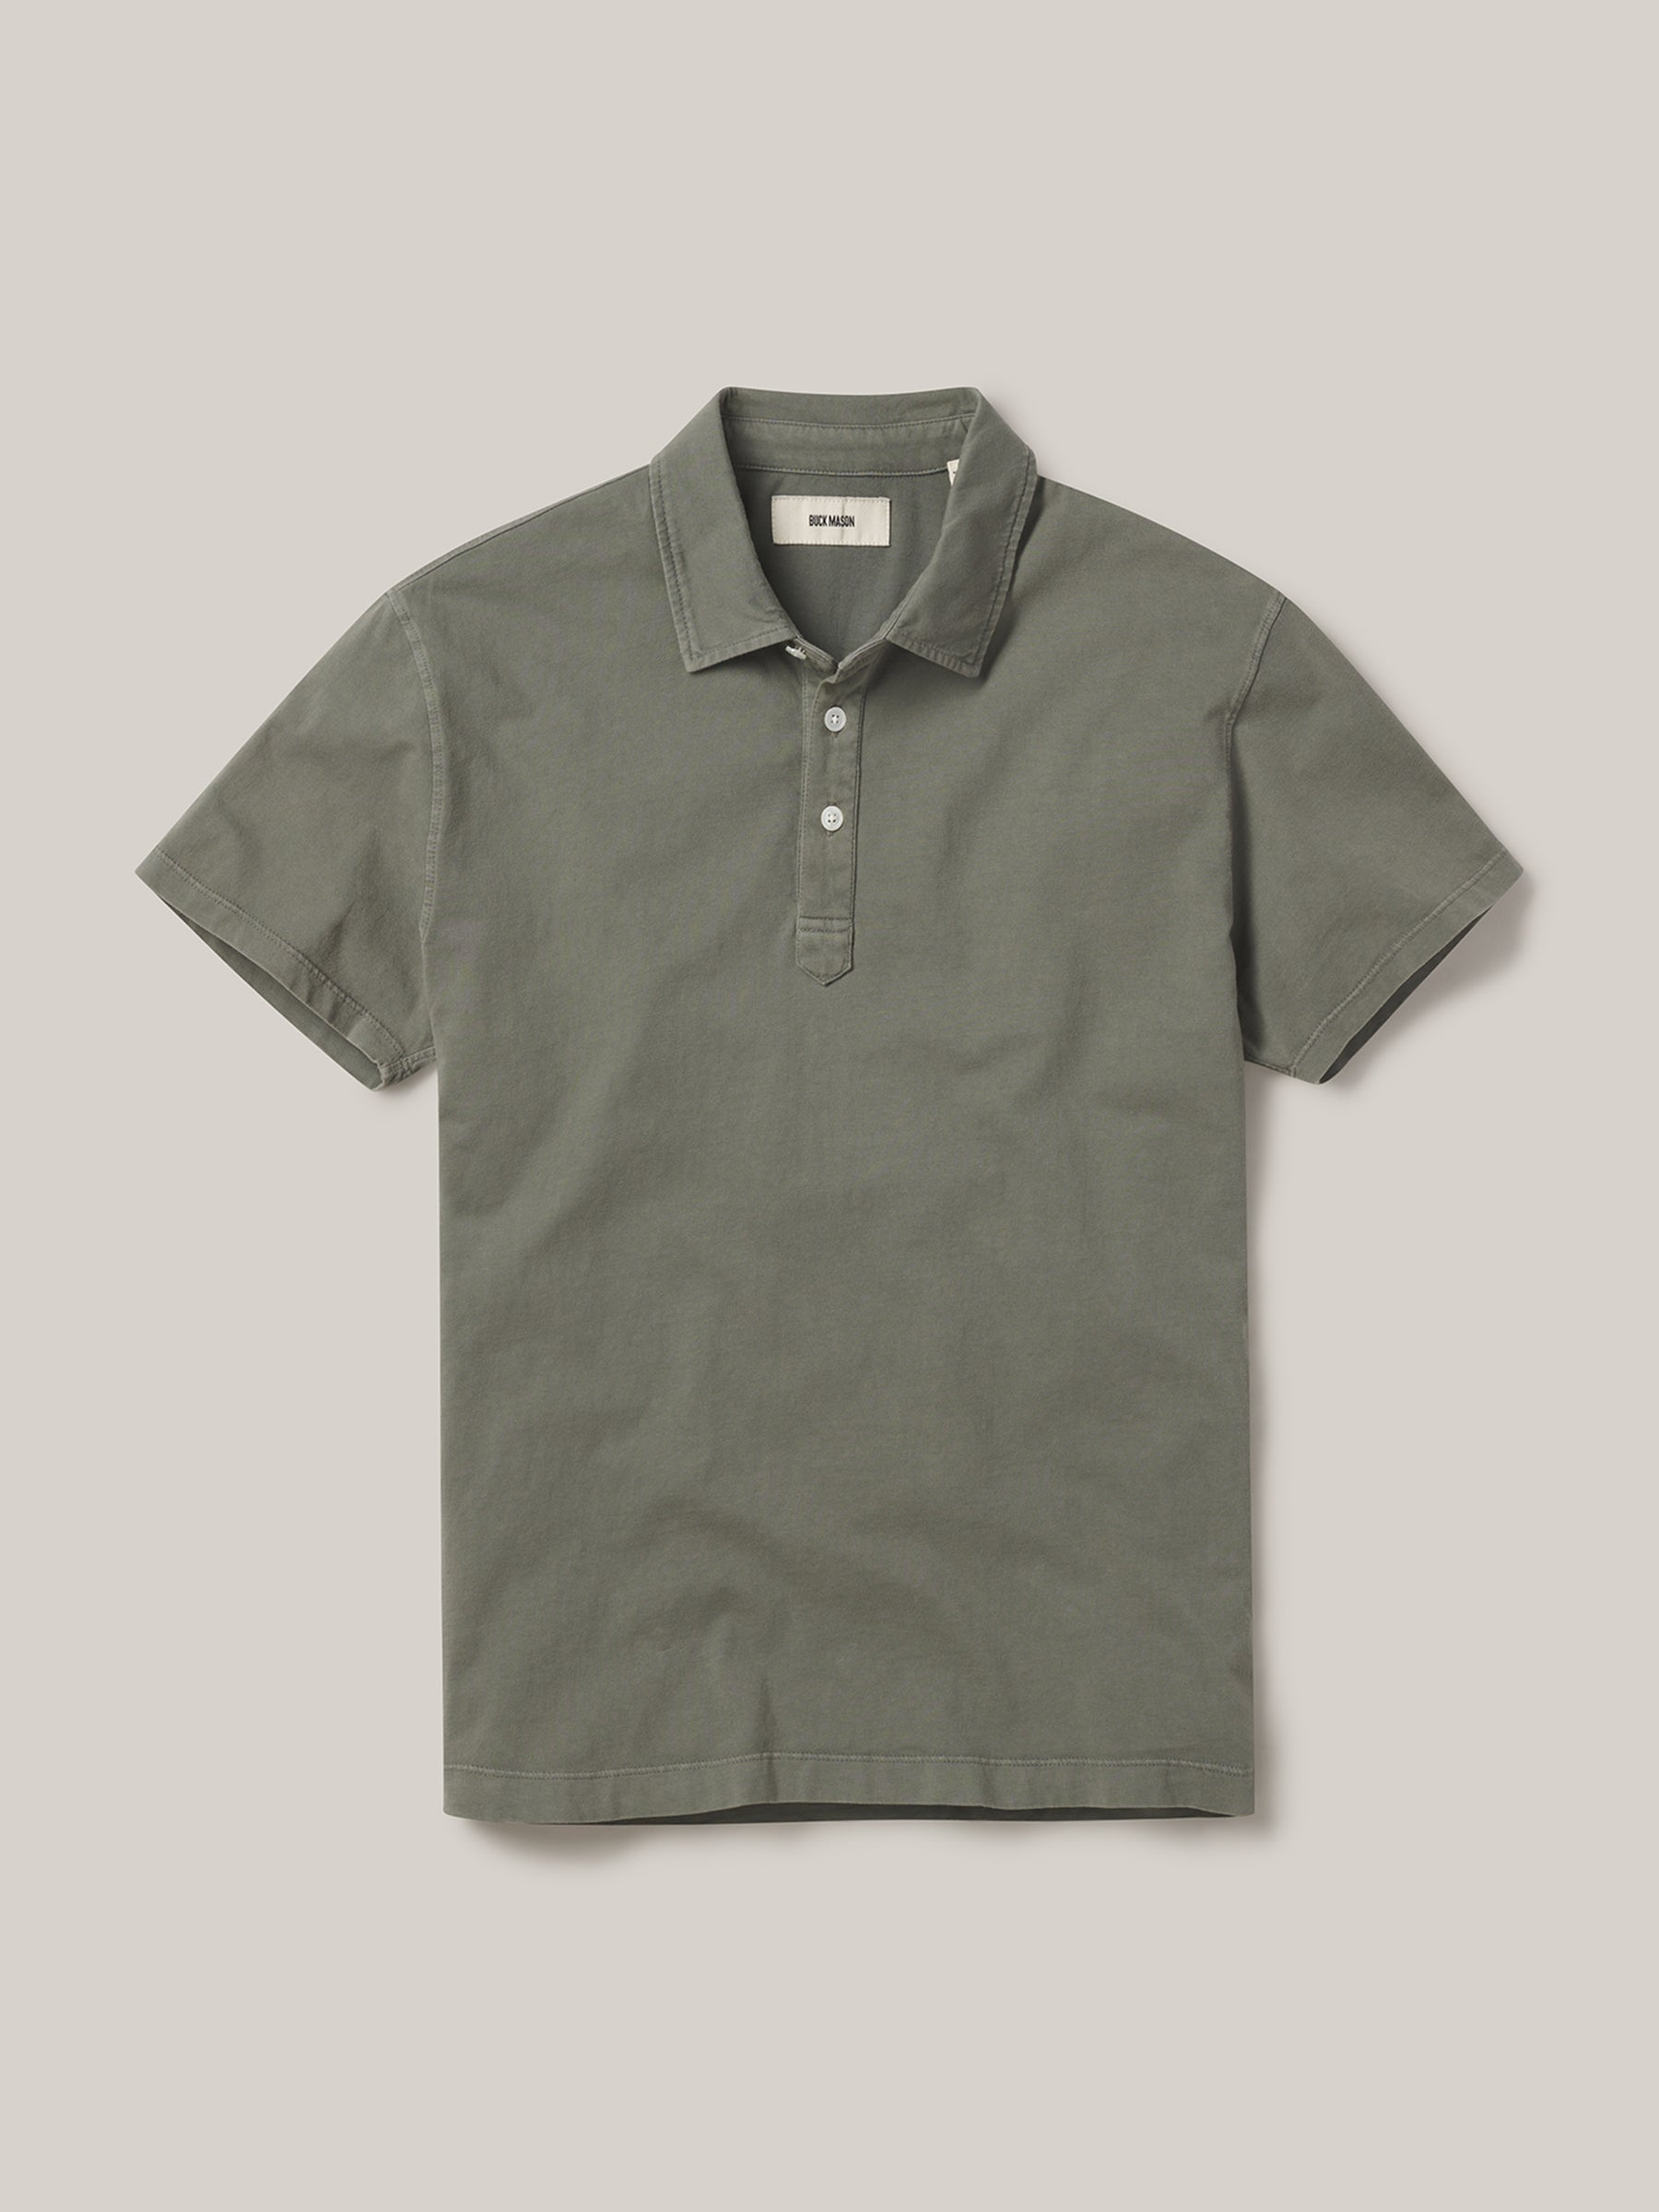 Castor Venice Wash Sueded Cotton Polo